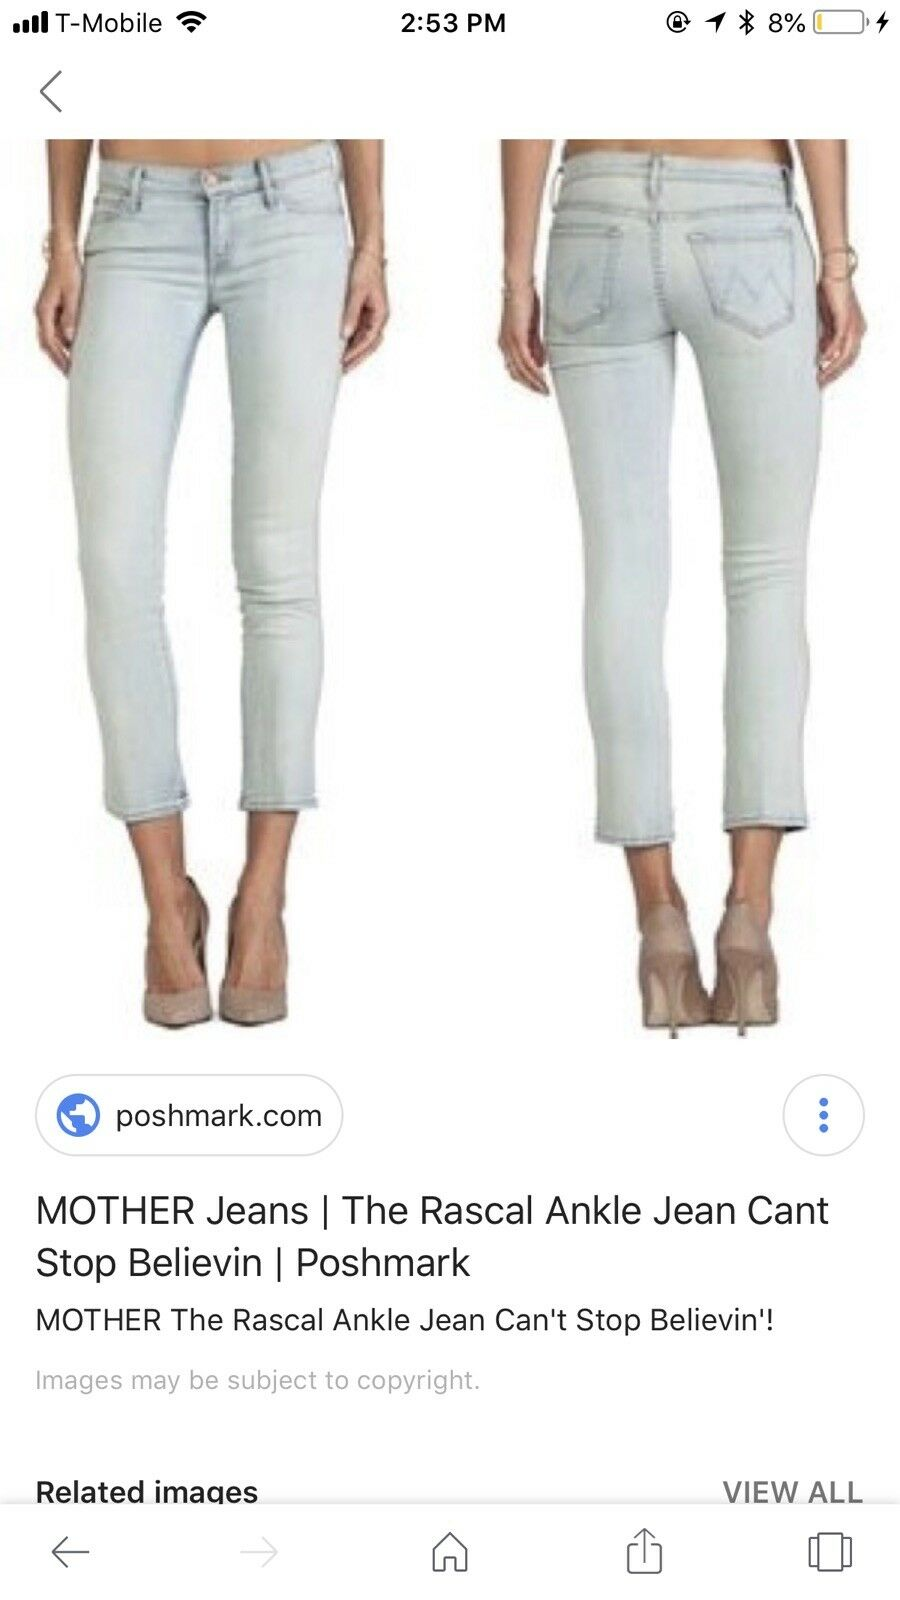 275 Mother The Looker Skinny Jeans-CANT STOP BELIEVIN New WT Size 32